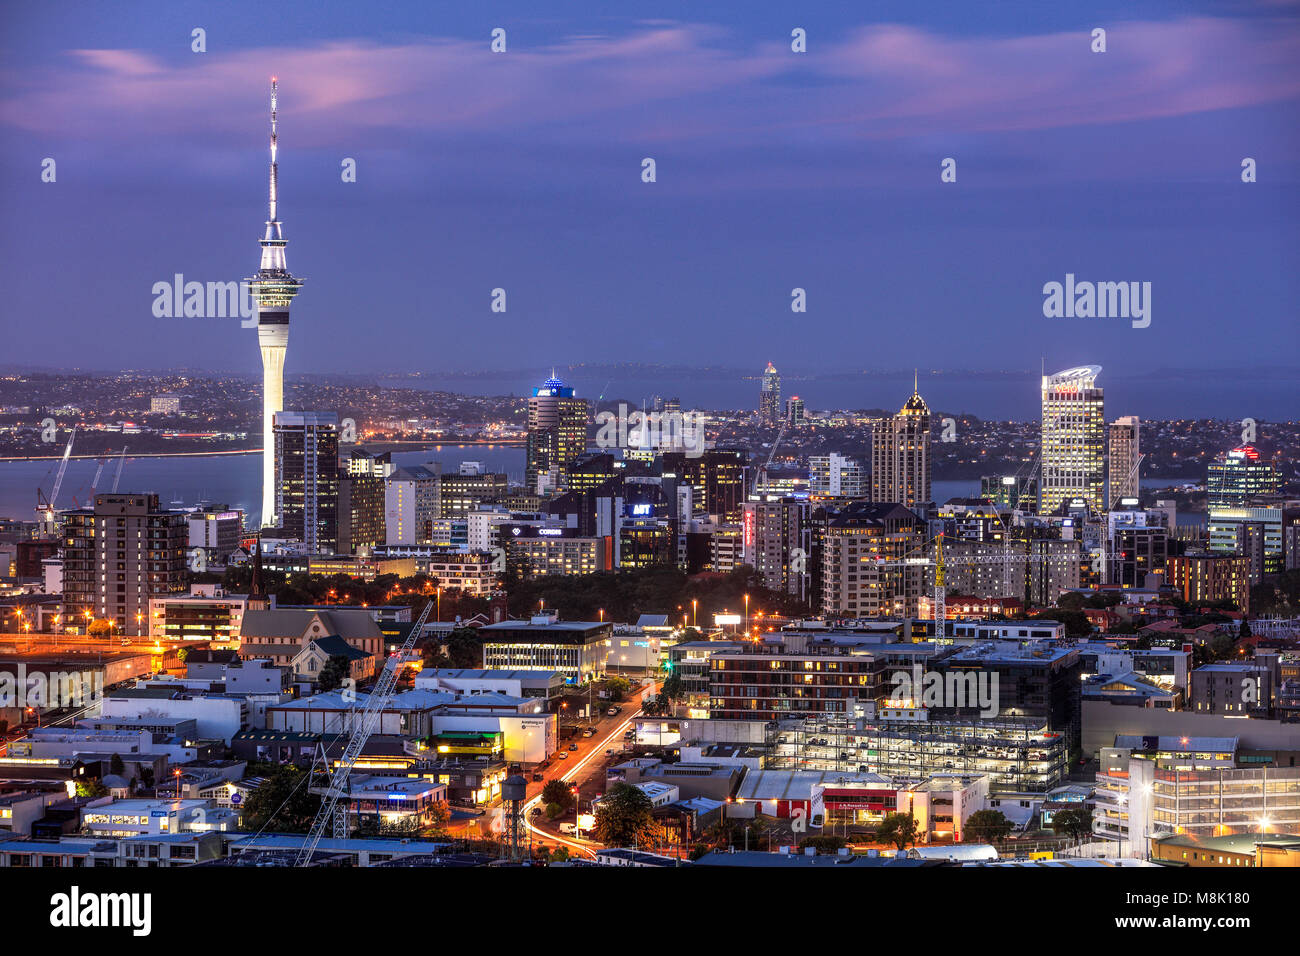 The view of Auckland from the summit of Mount Eden, New Zealand. - Stock Image